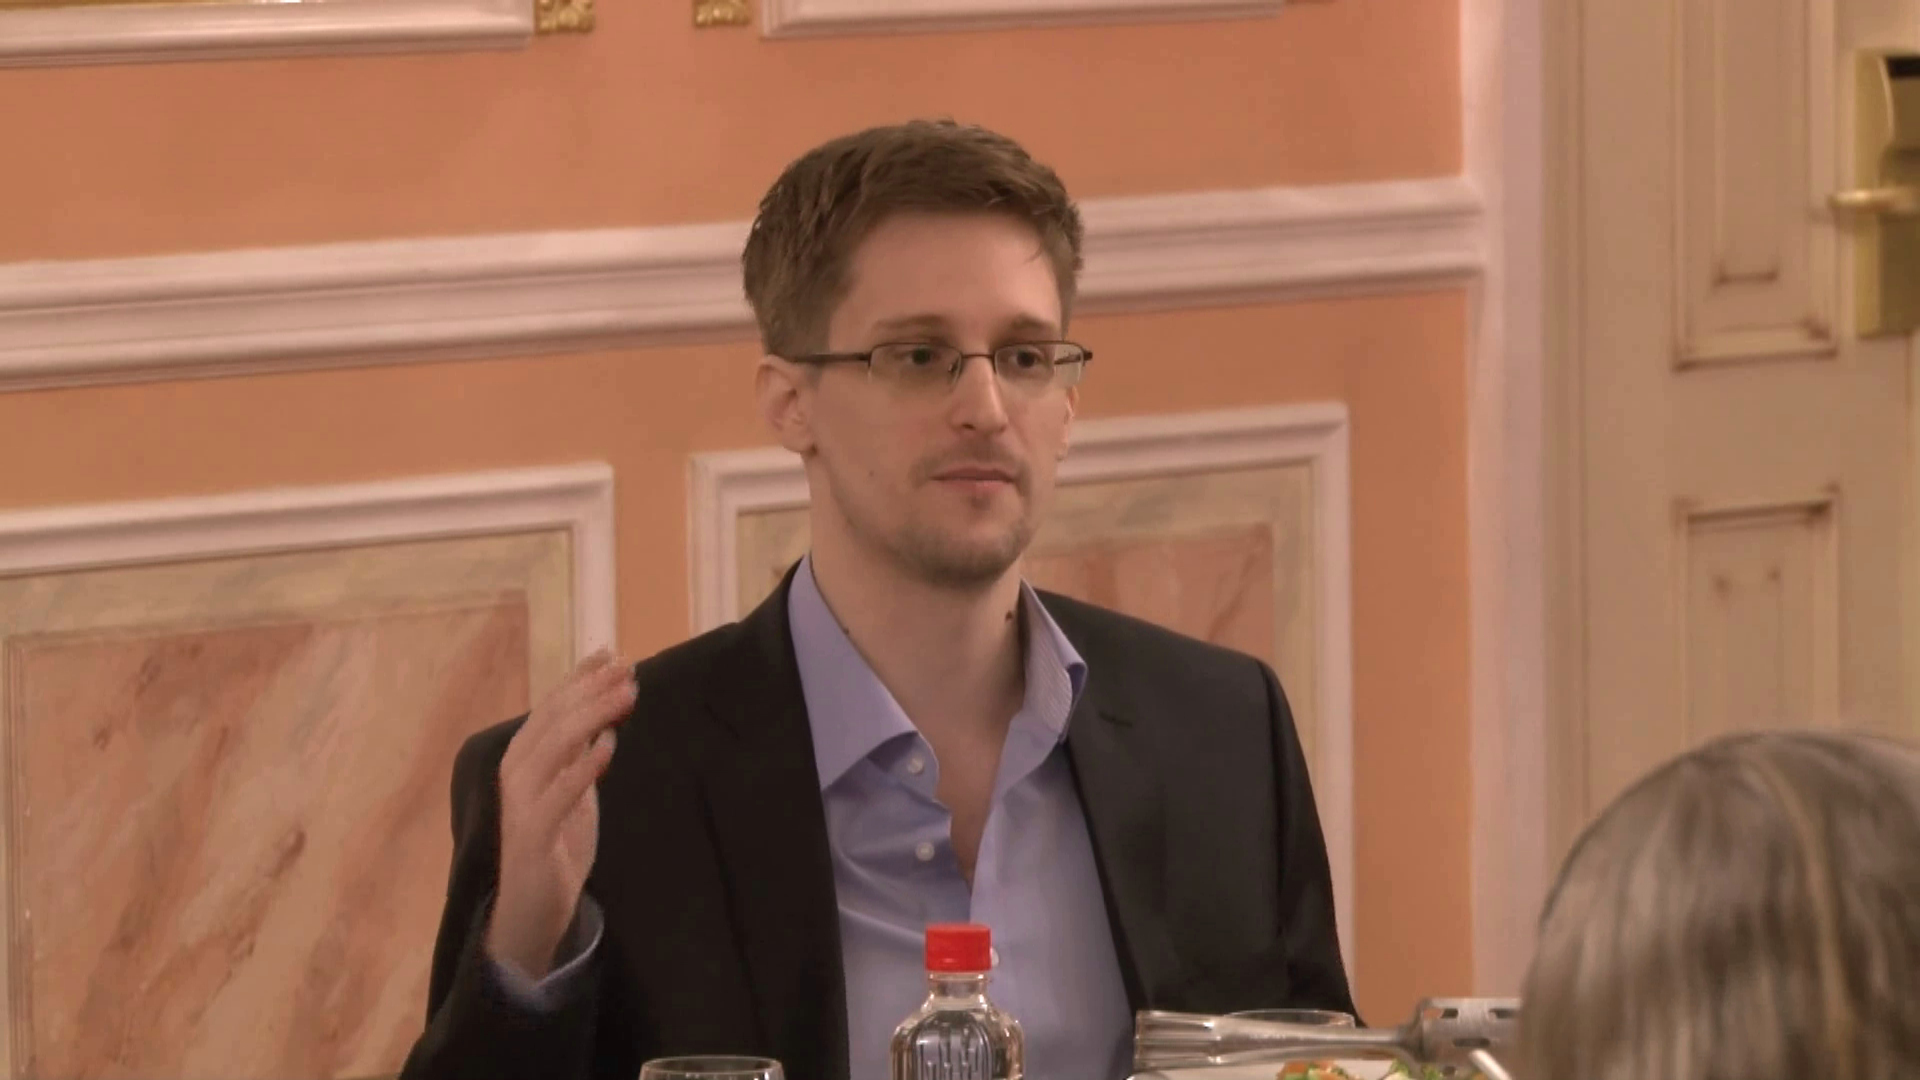 Snowden Reveals NSA Intervention In Syria, Hacking Program Compelled Him To Leak Documents | TechCrunch